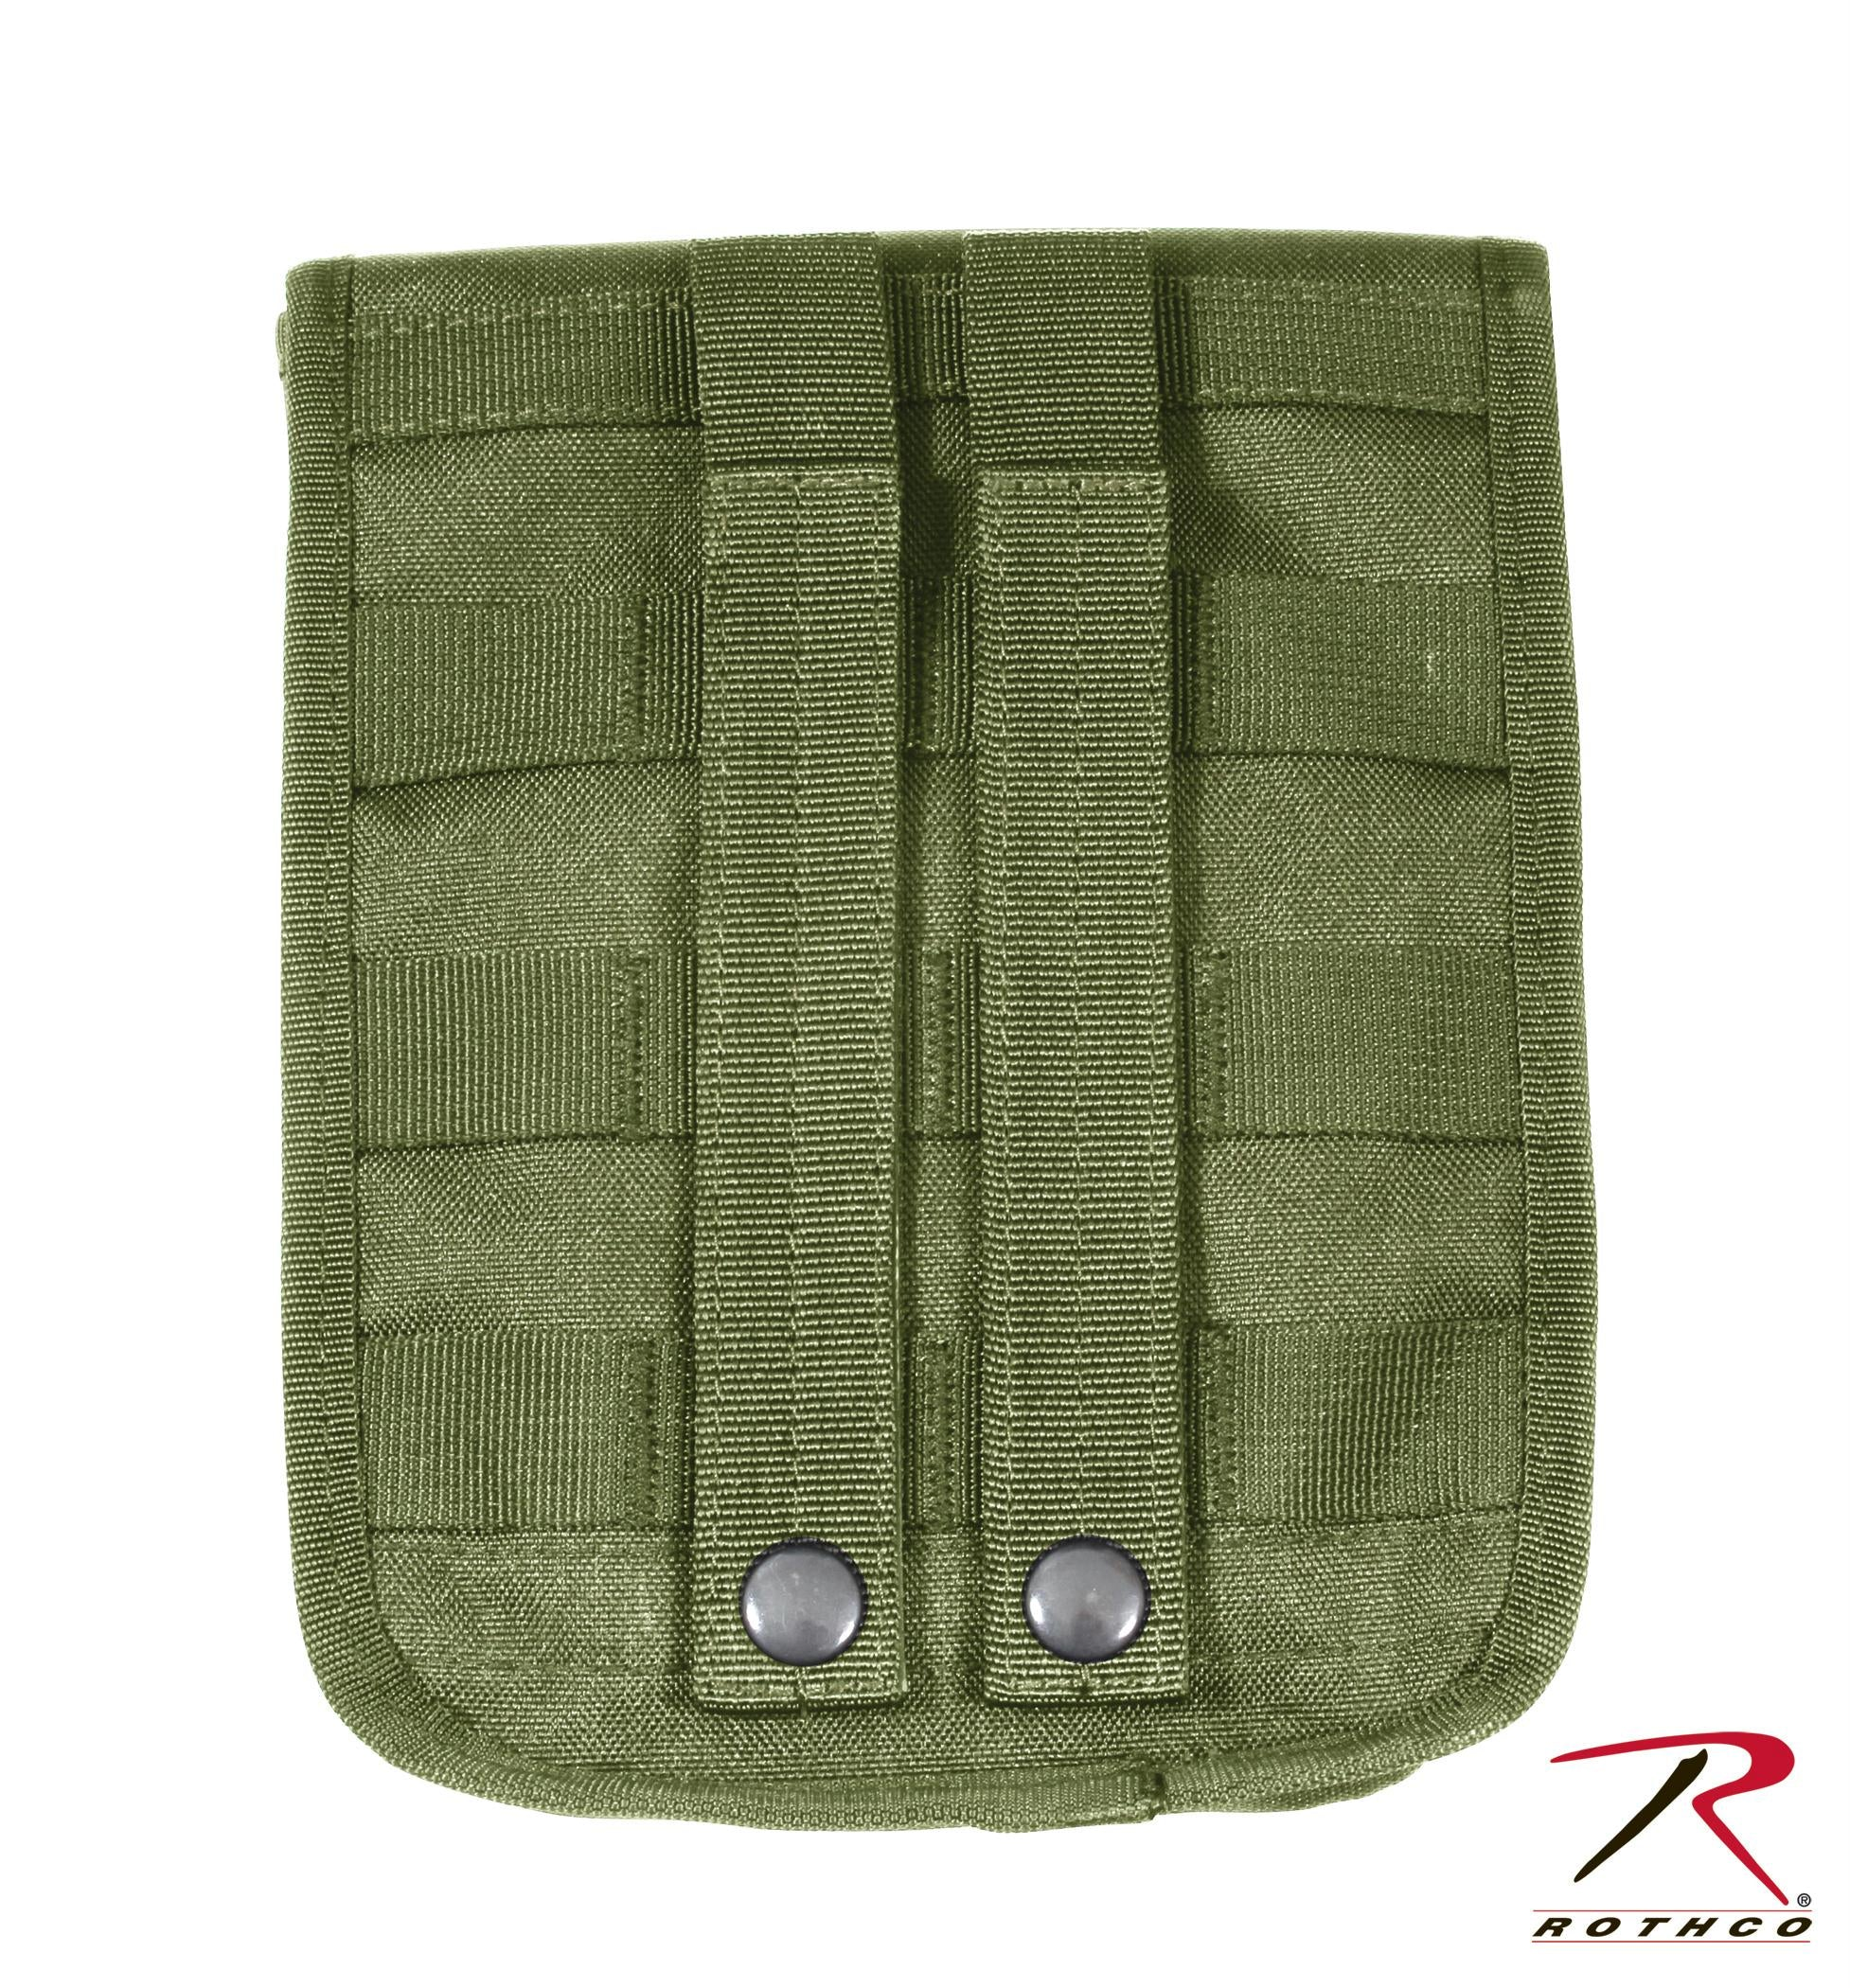 Rothco MOLLE 2 Pocket Ammo Pouch - Olive Drab